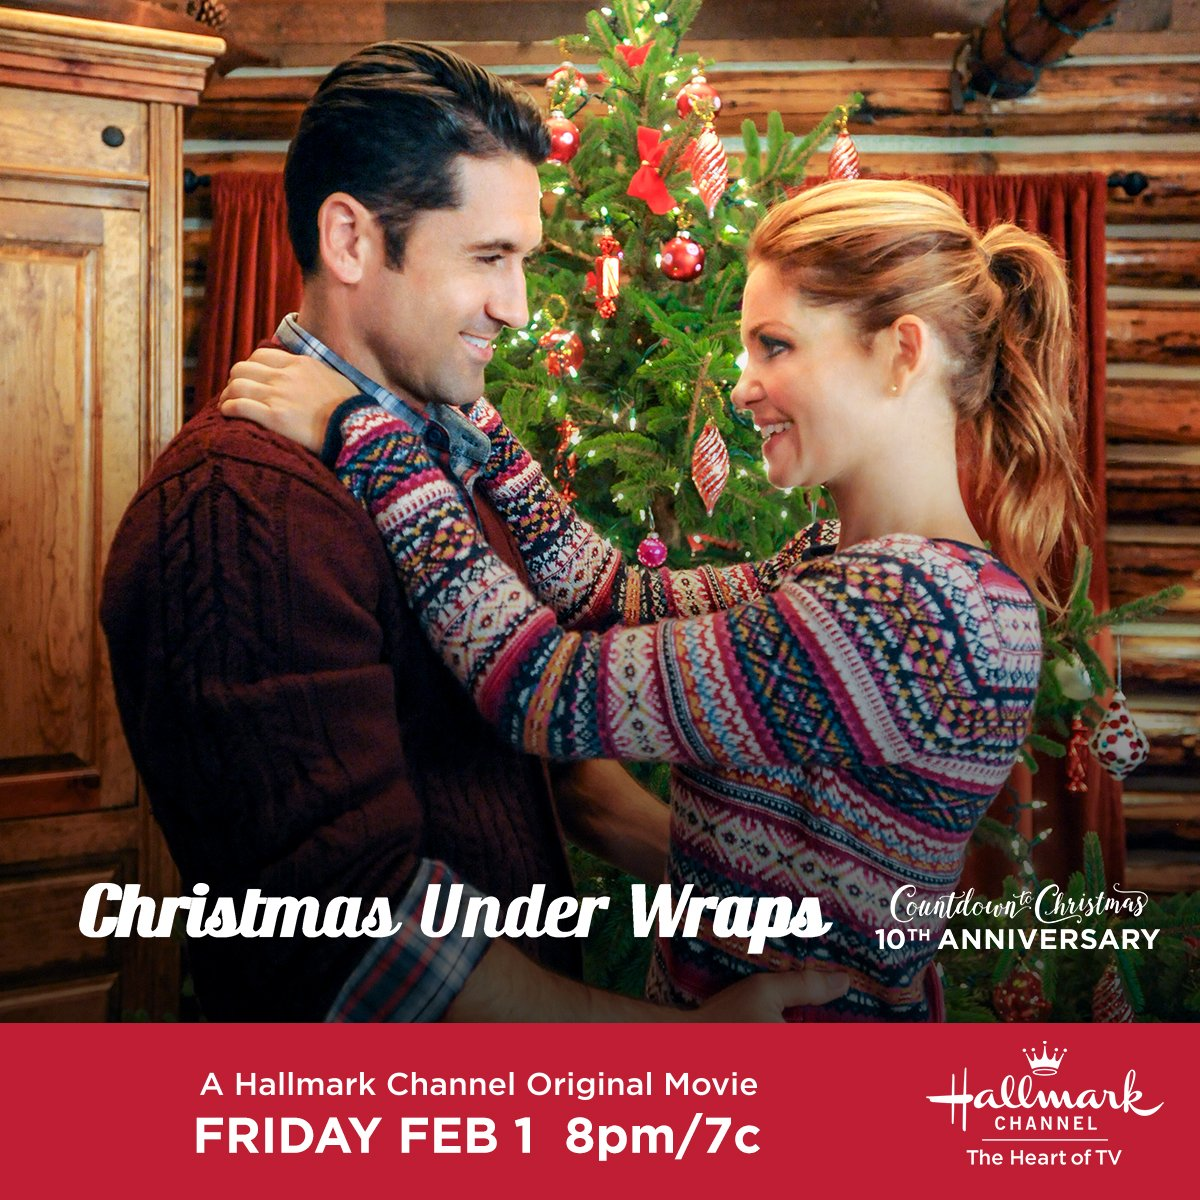 Christmas Under Wraps.Hallmark Channel On Twitter Every Friday All Year Long